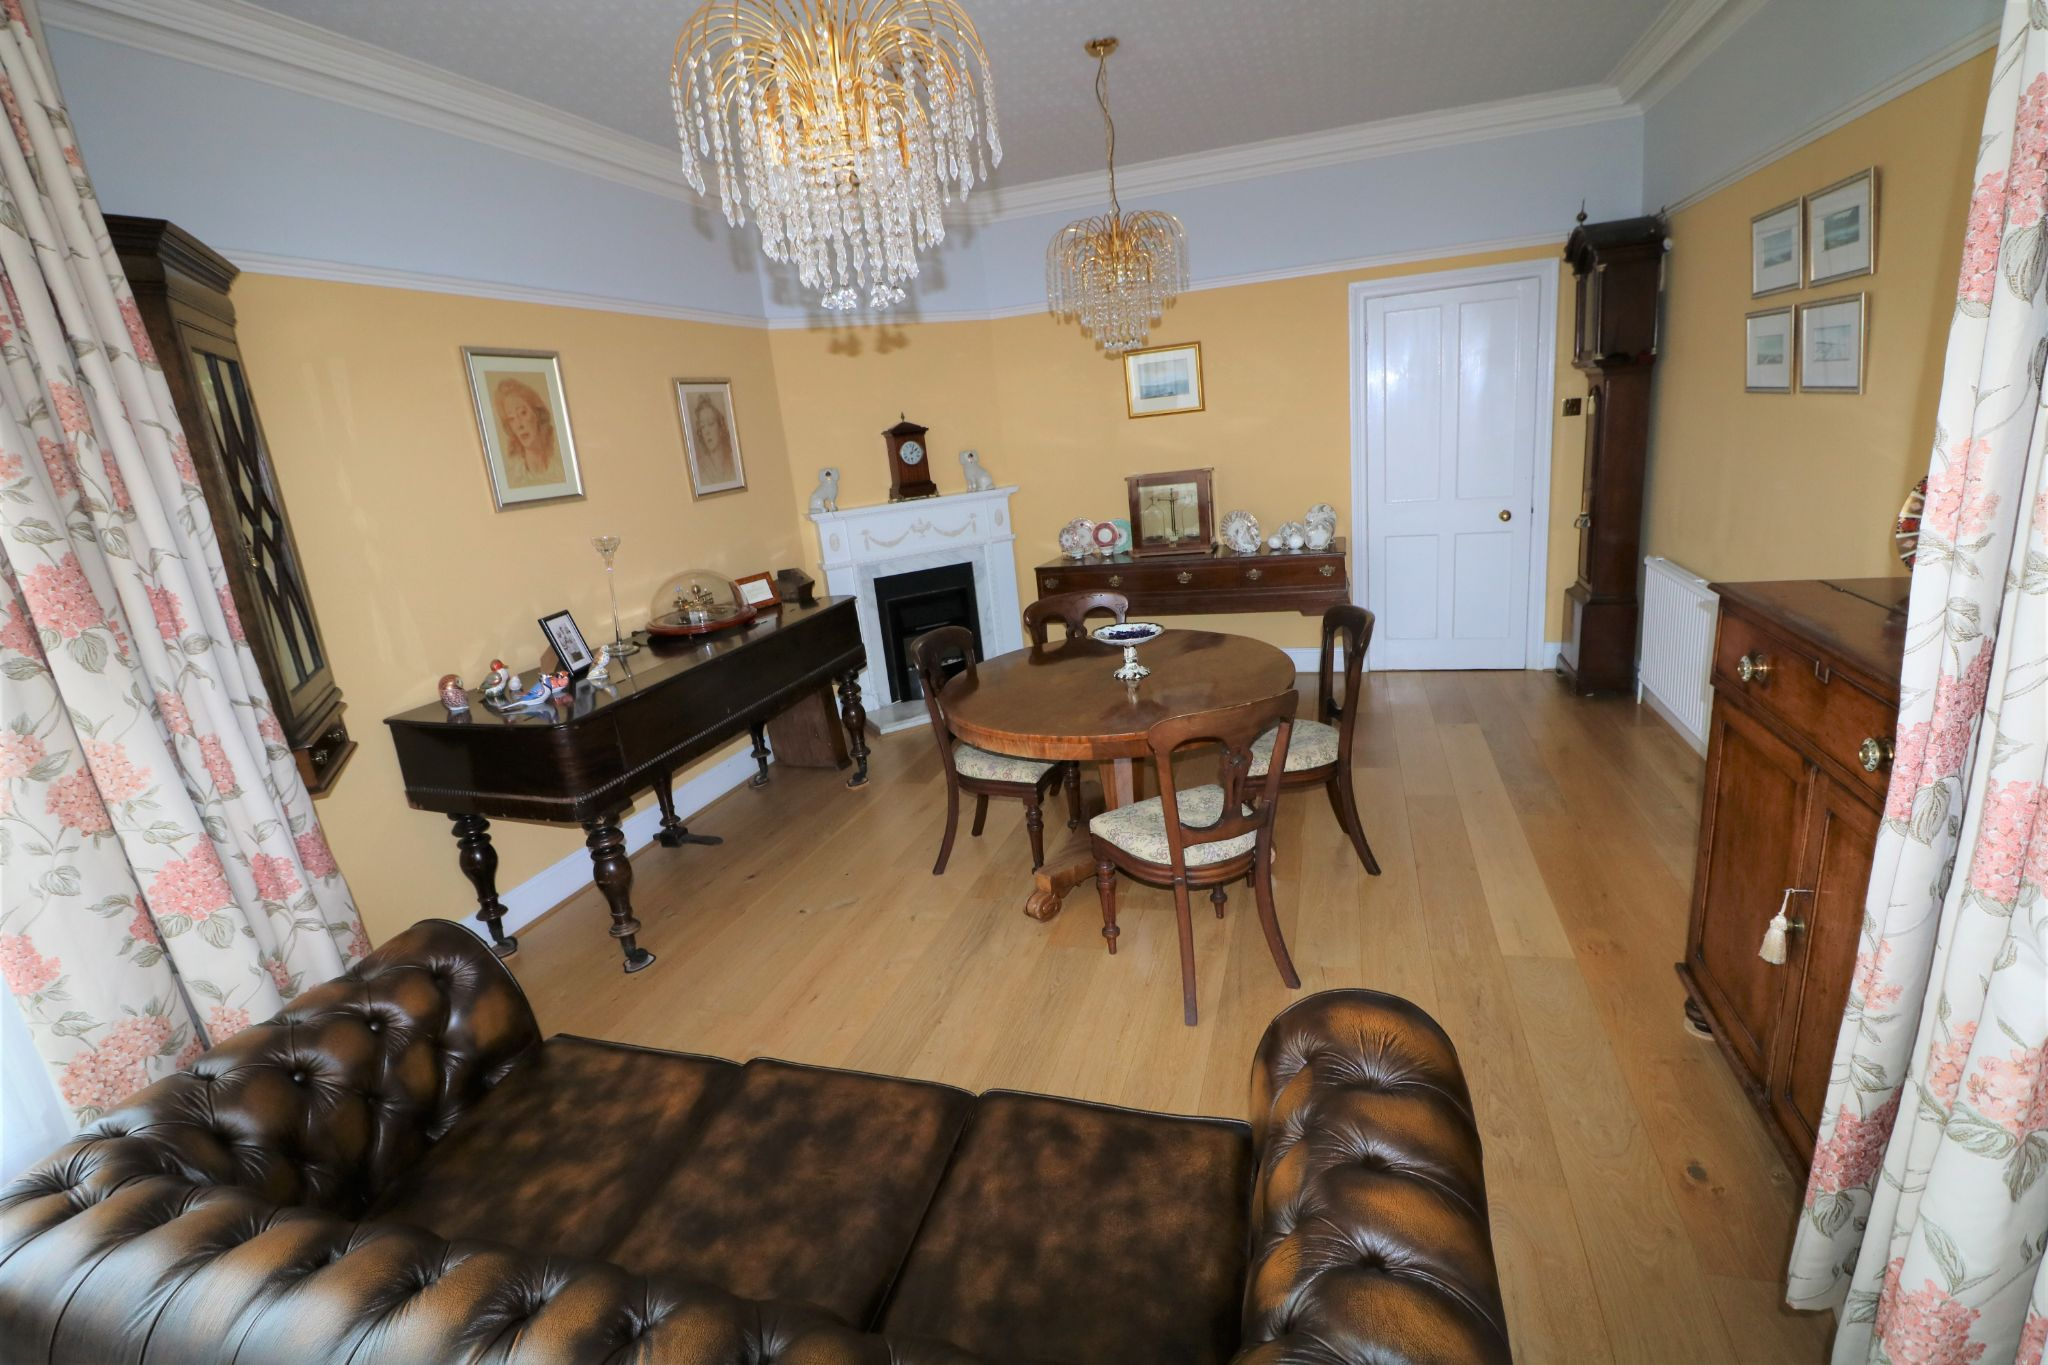 6 Bedroom Semi-detached House For Sale - Photograph 5